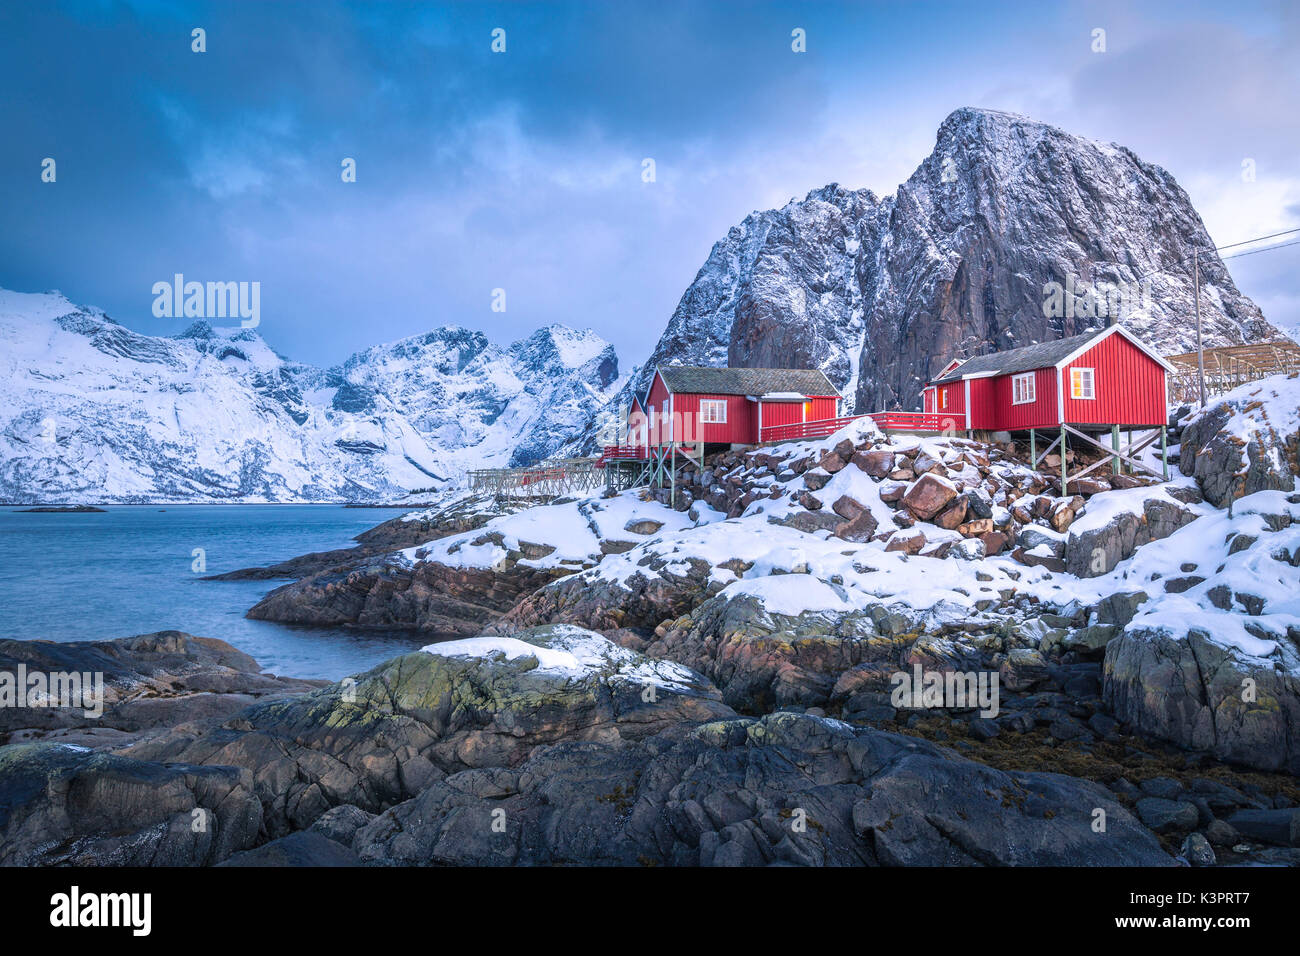 Beautiful and iconic Hamnoy village, Lofoten Islands, Norway - Stock Image